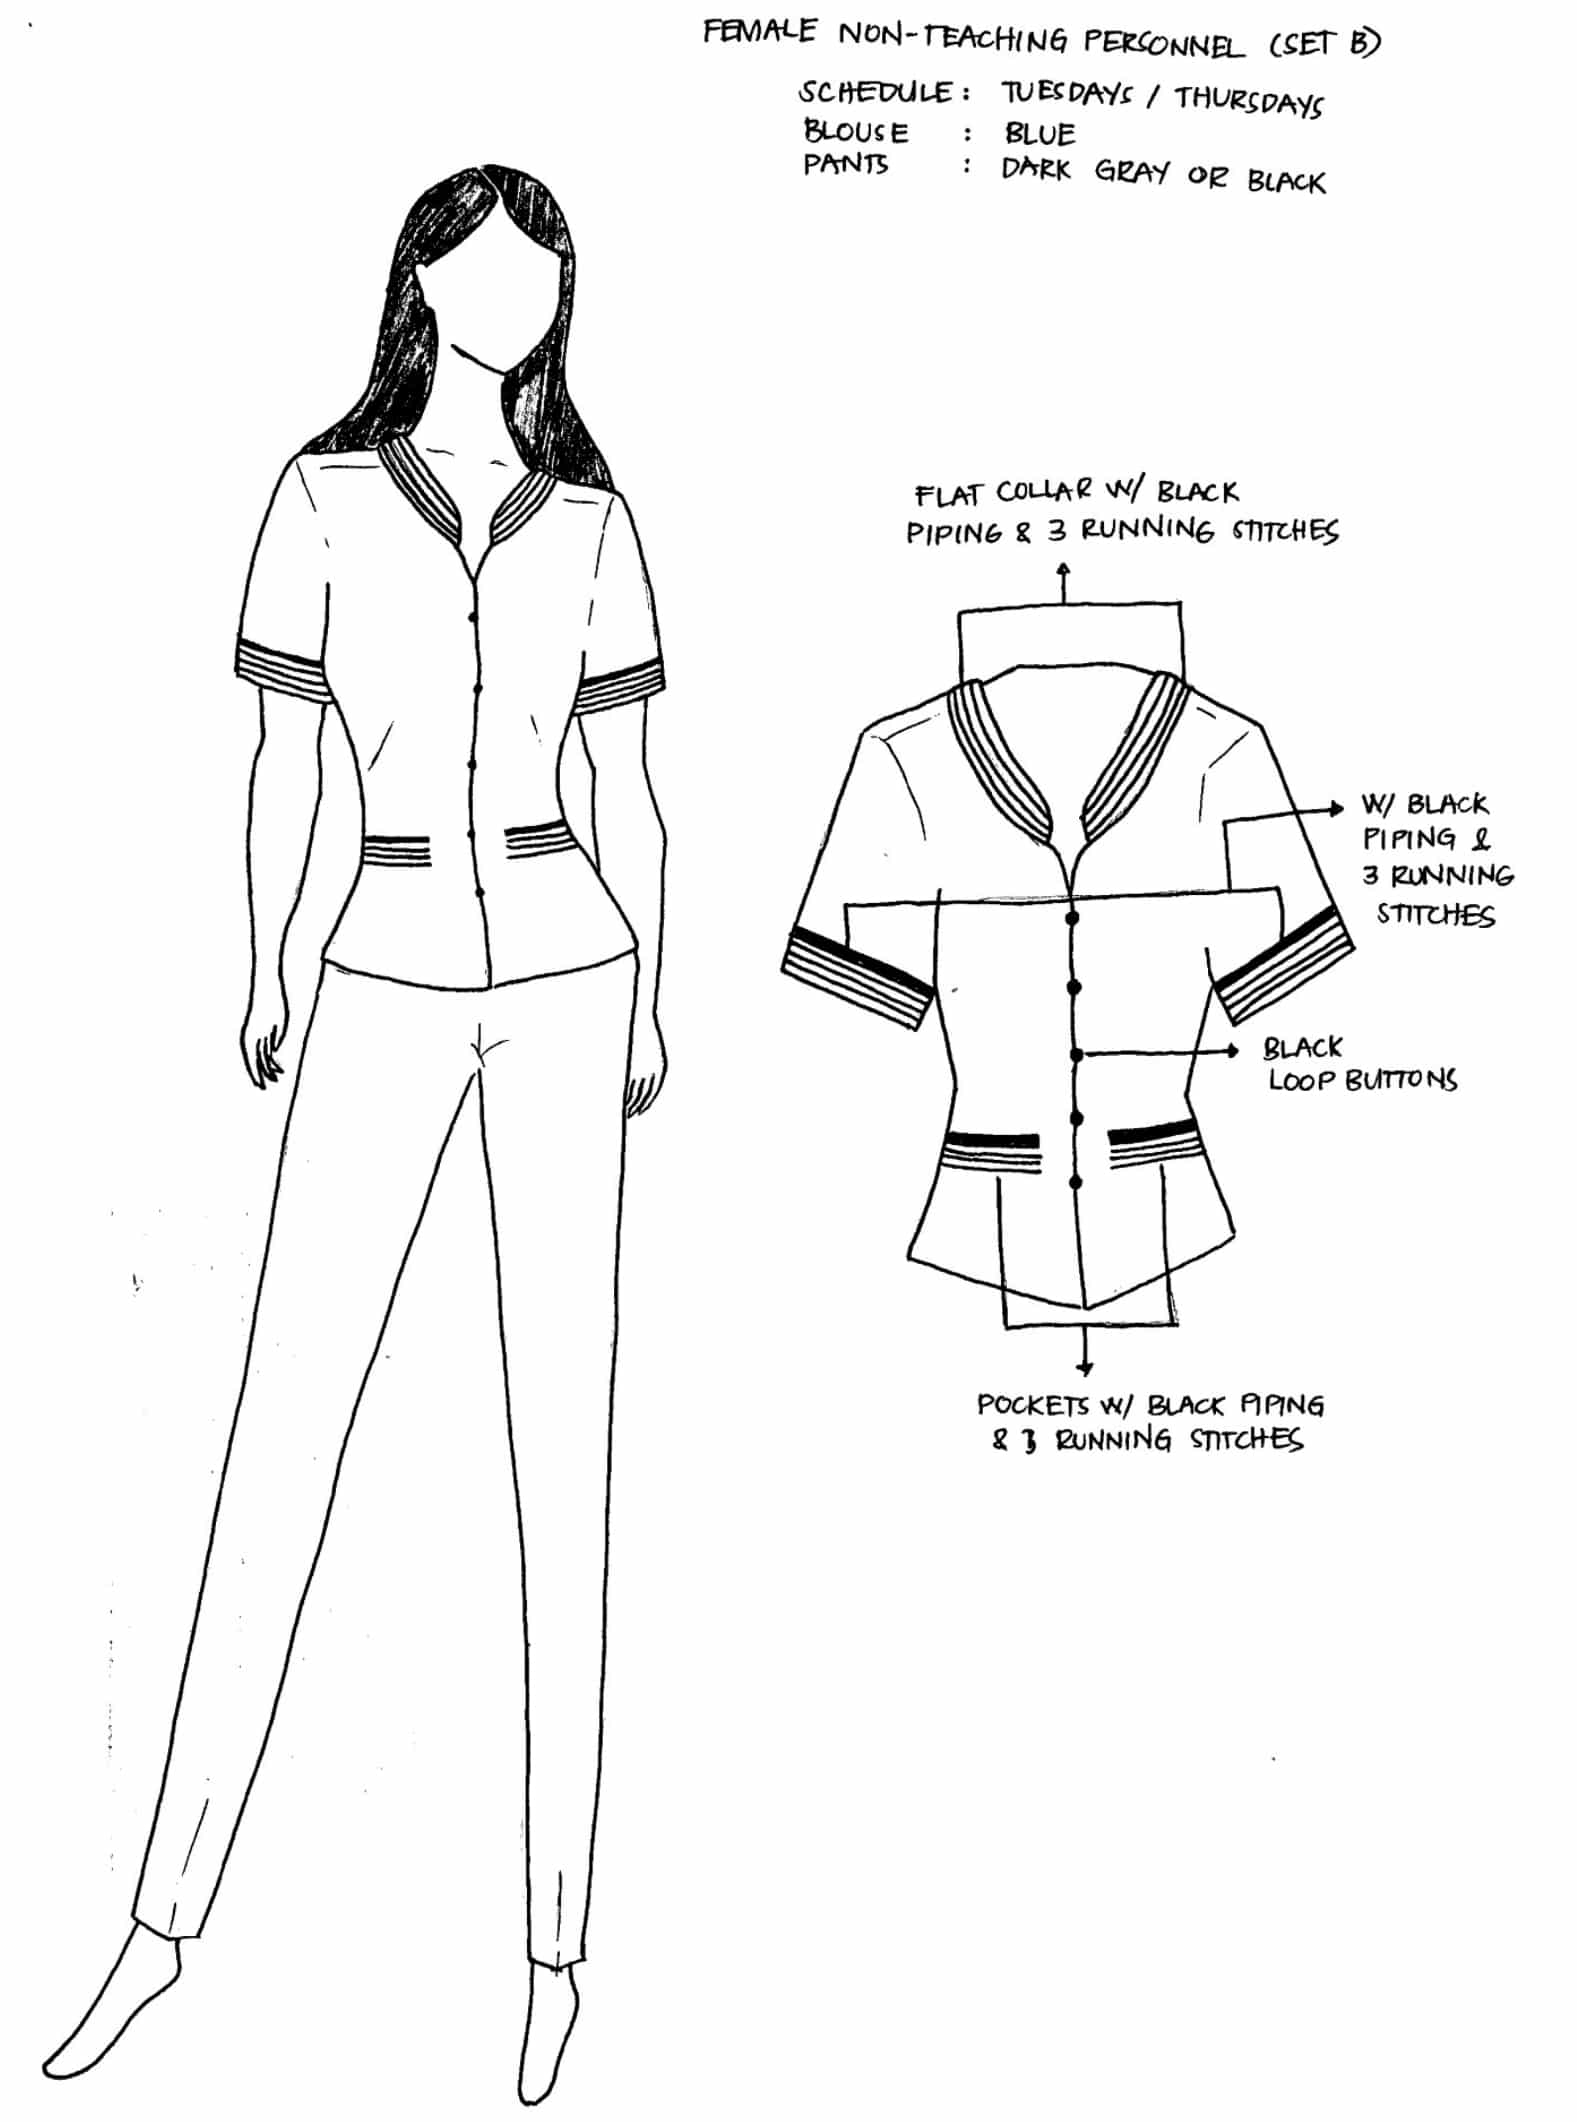 Updated DepEd National Uniforms for Teaching and Non